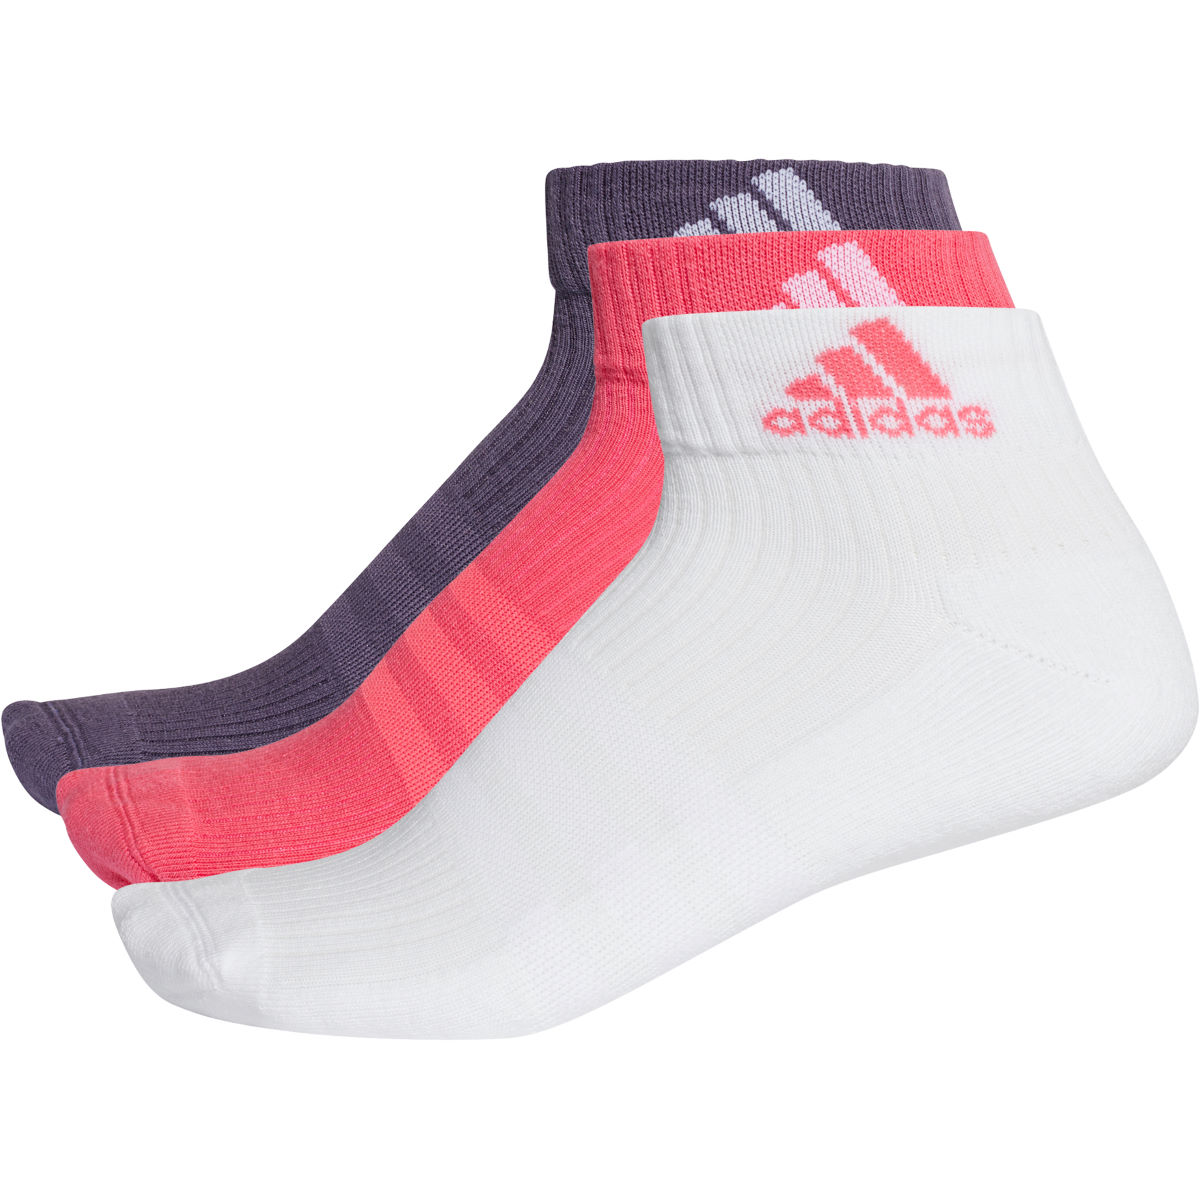 adidas 3S Performance Ankle 3pk - Calcetines para correr